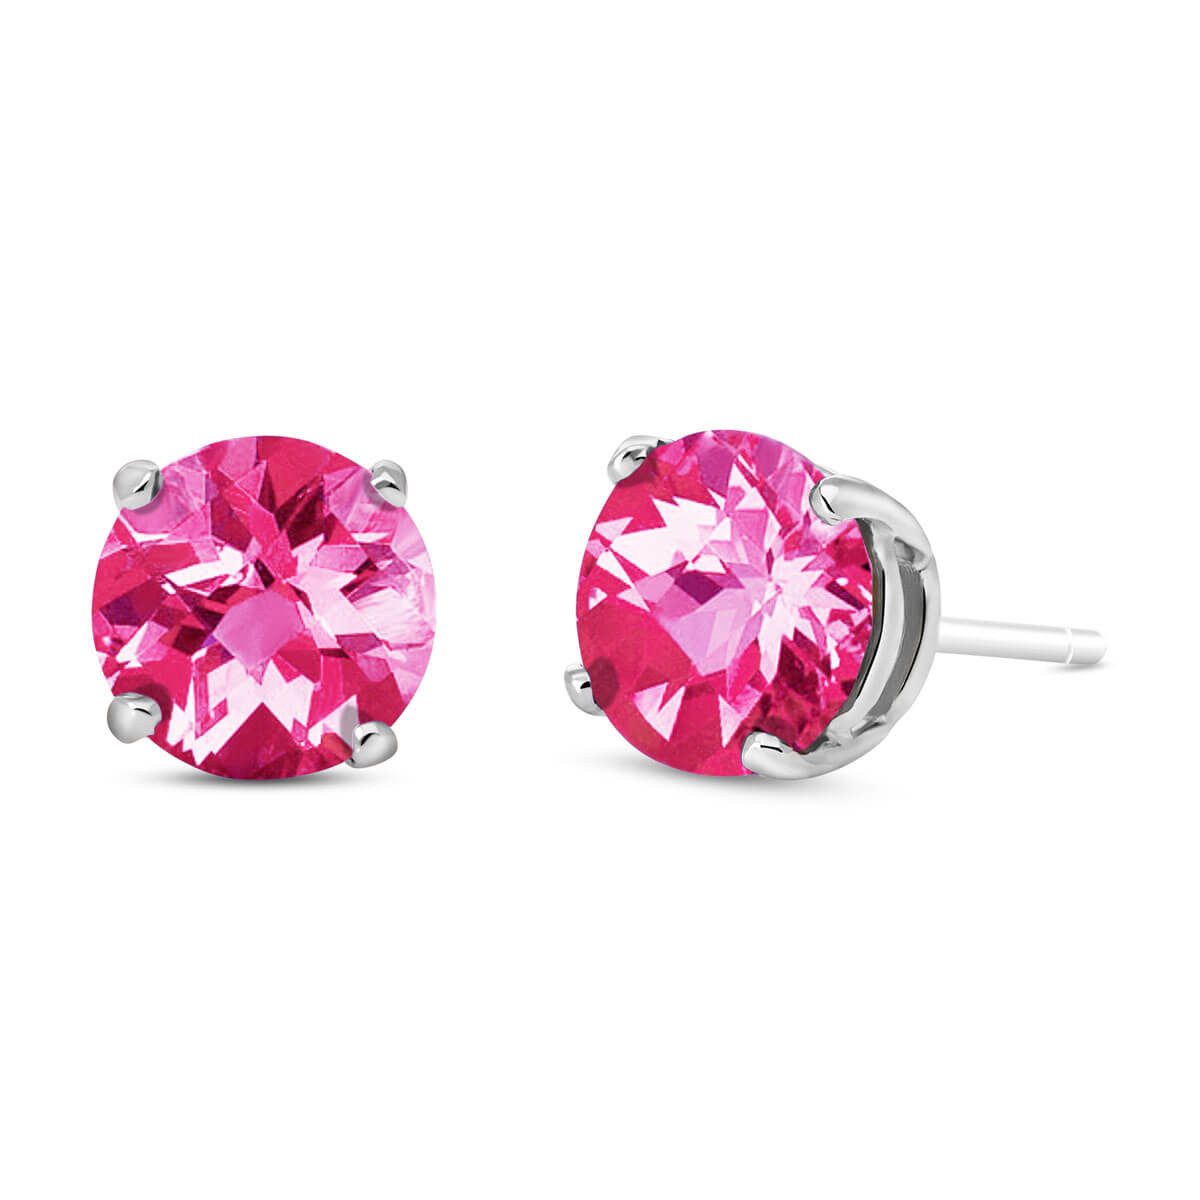 Pink Topaz Stud Earrings 3.1 ctw in 9ct White Gold